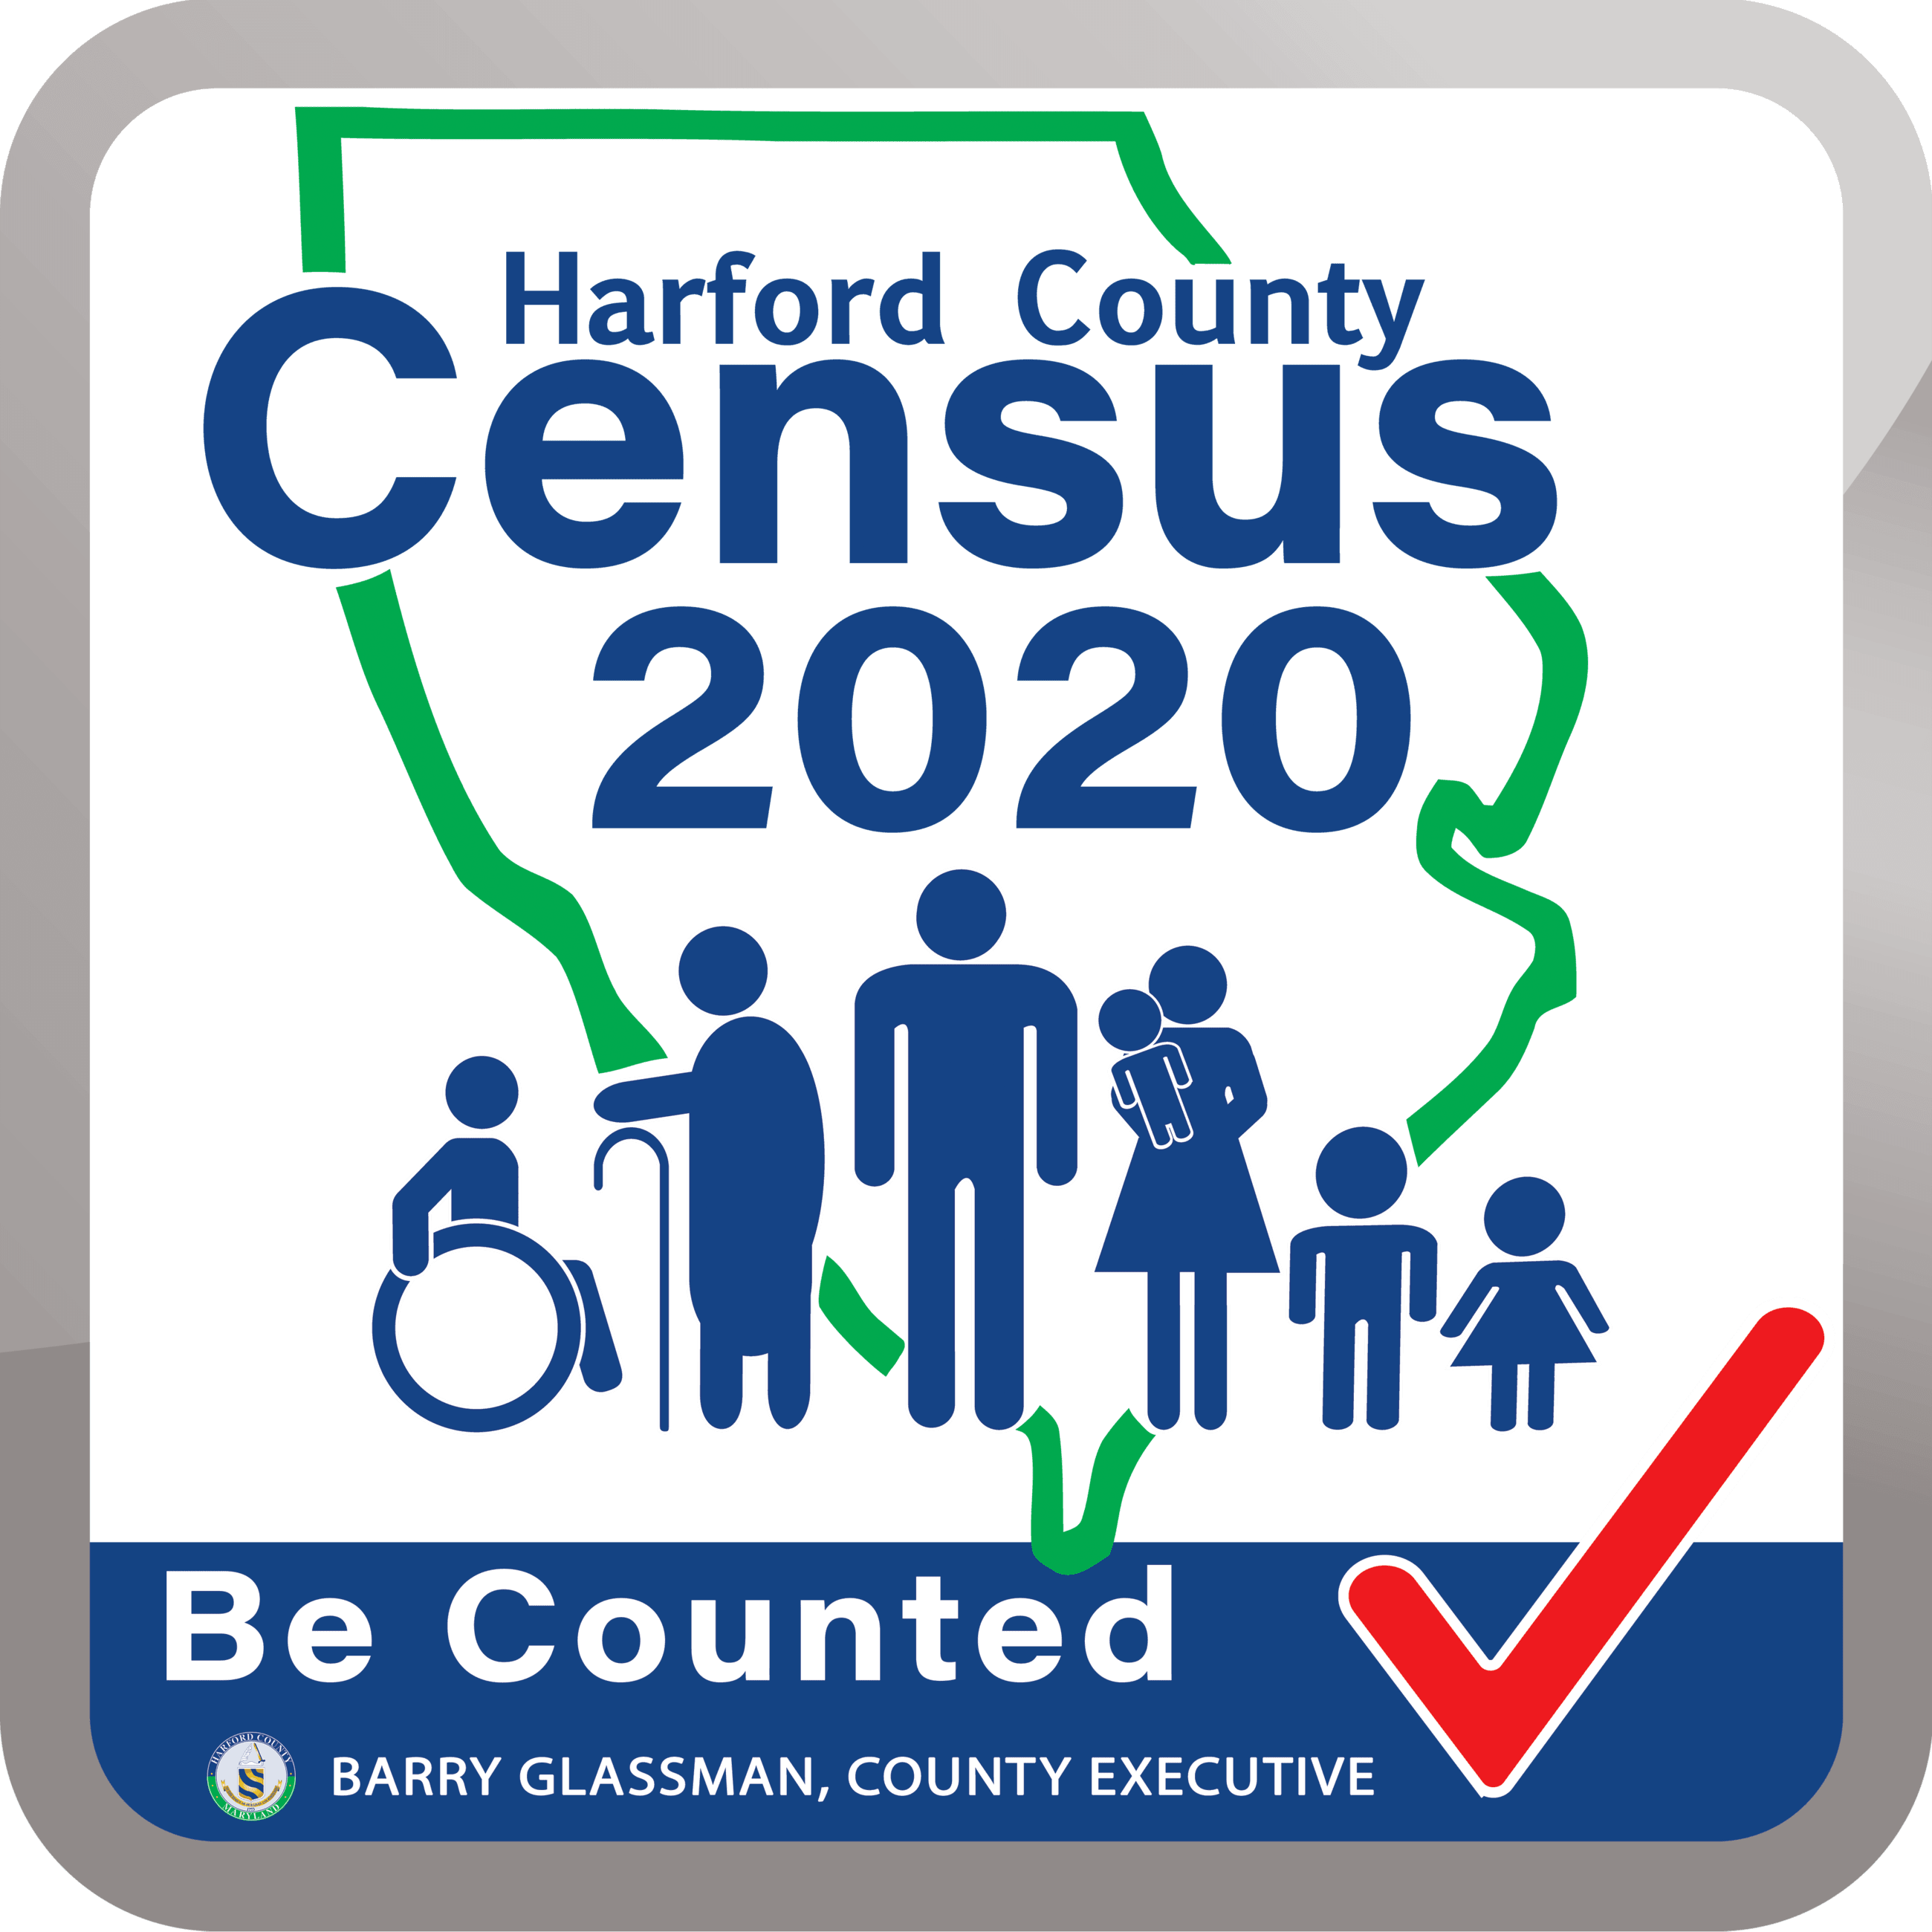 Harford County Census 2020 - Be Counted link to Harford County Census page